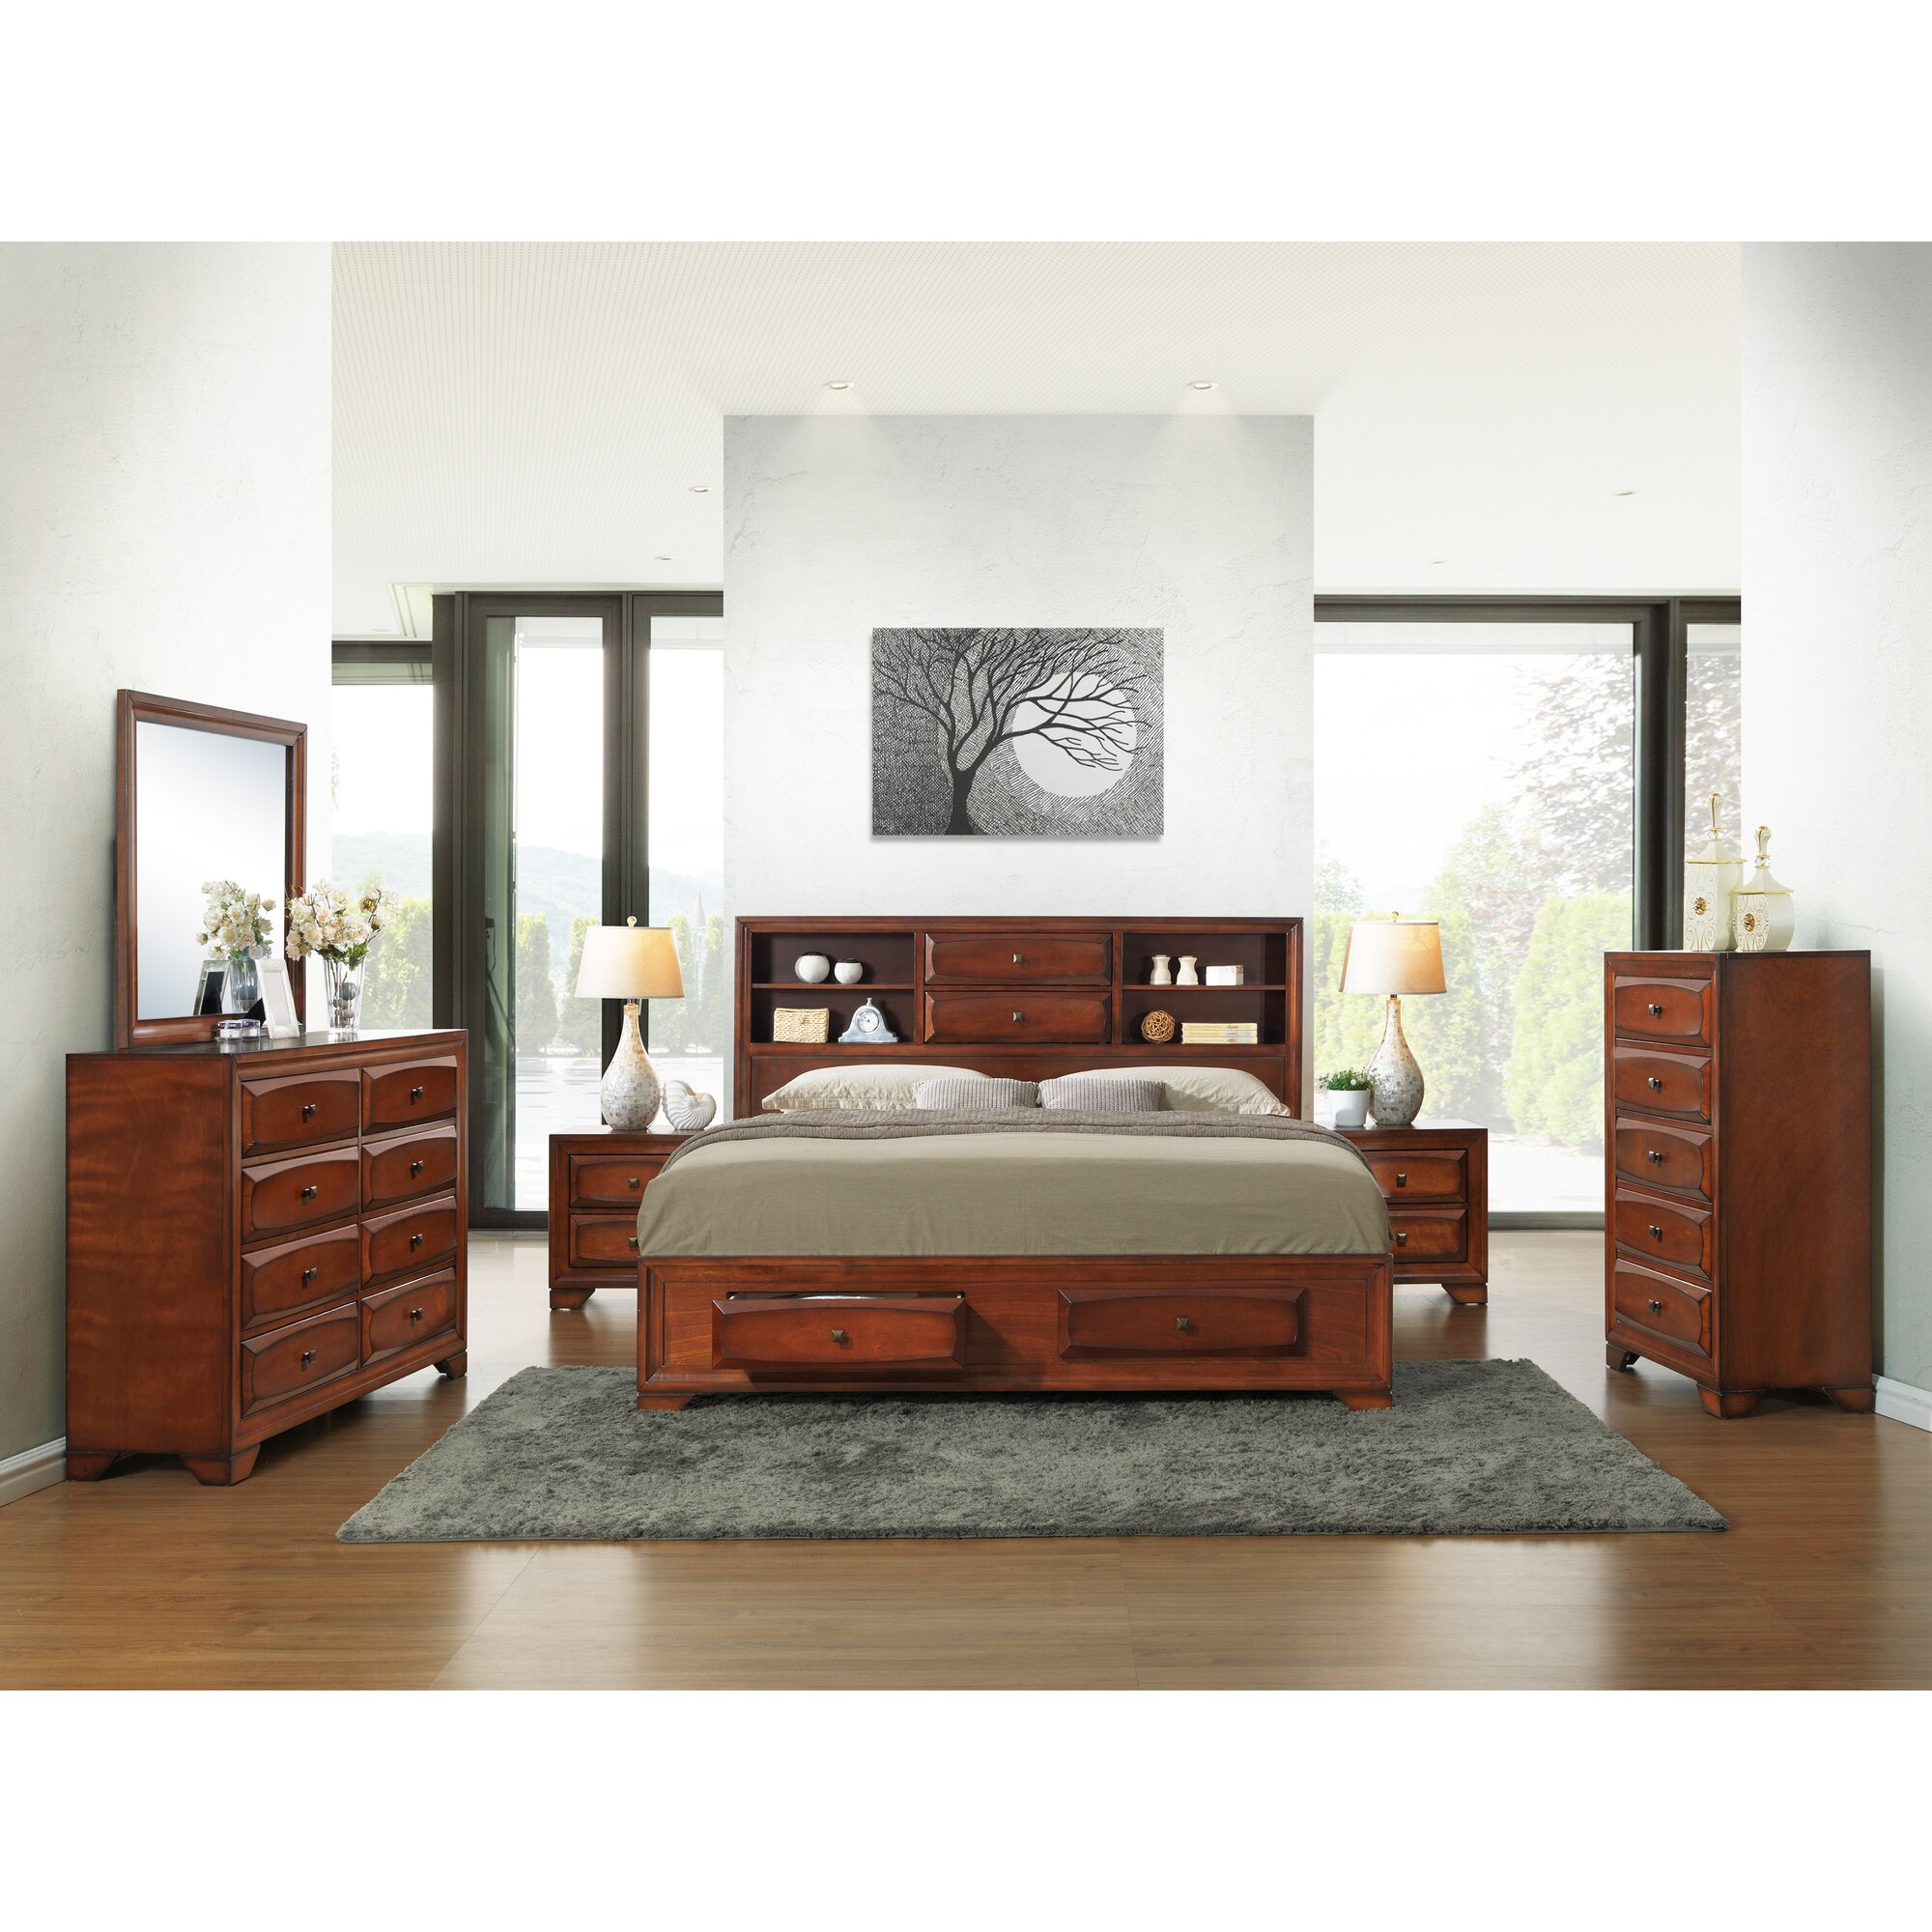 Bedroom Furniture: Roundhill Furniture Asger King Platform Customizable